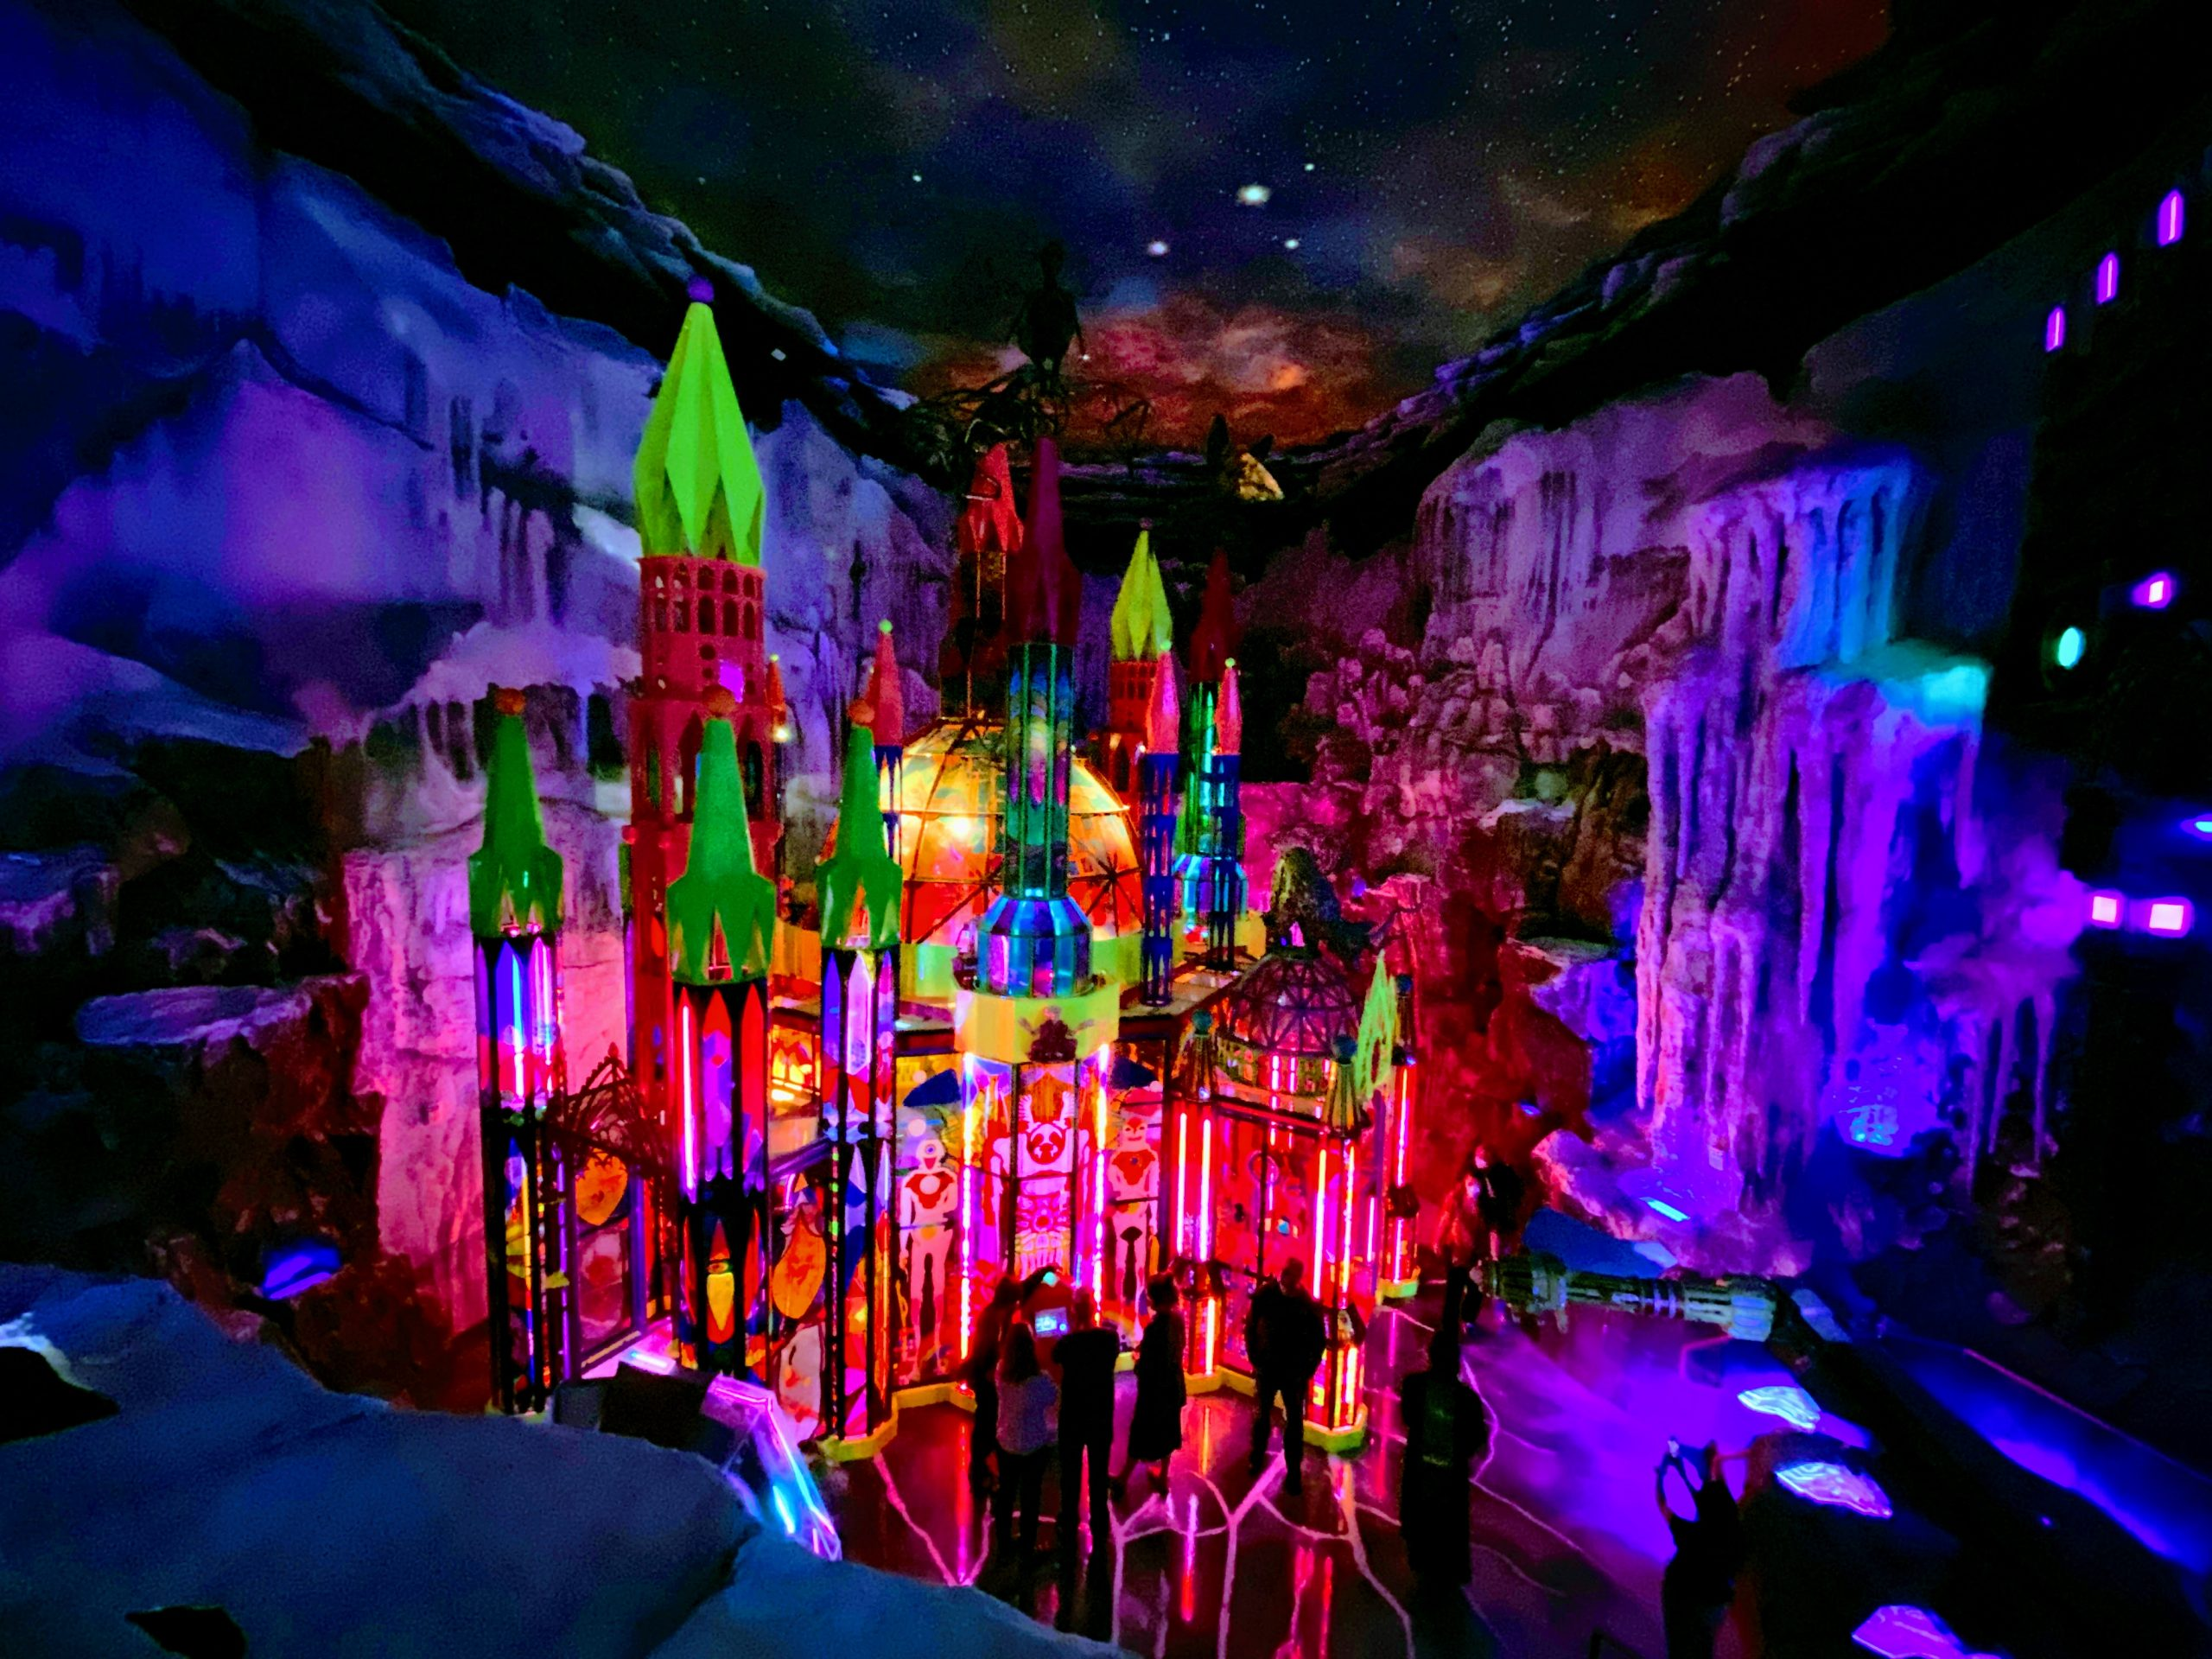 Meow Wolf Denver Convergence Station - The Cathedral